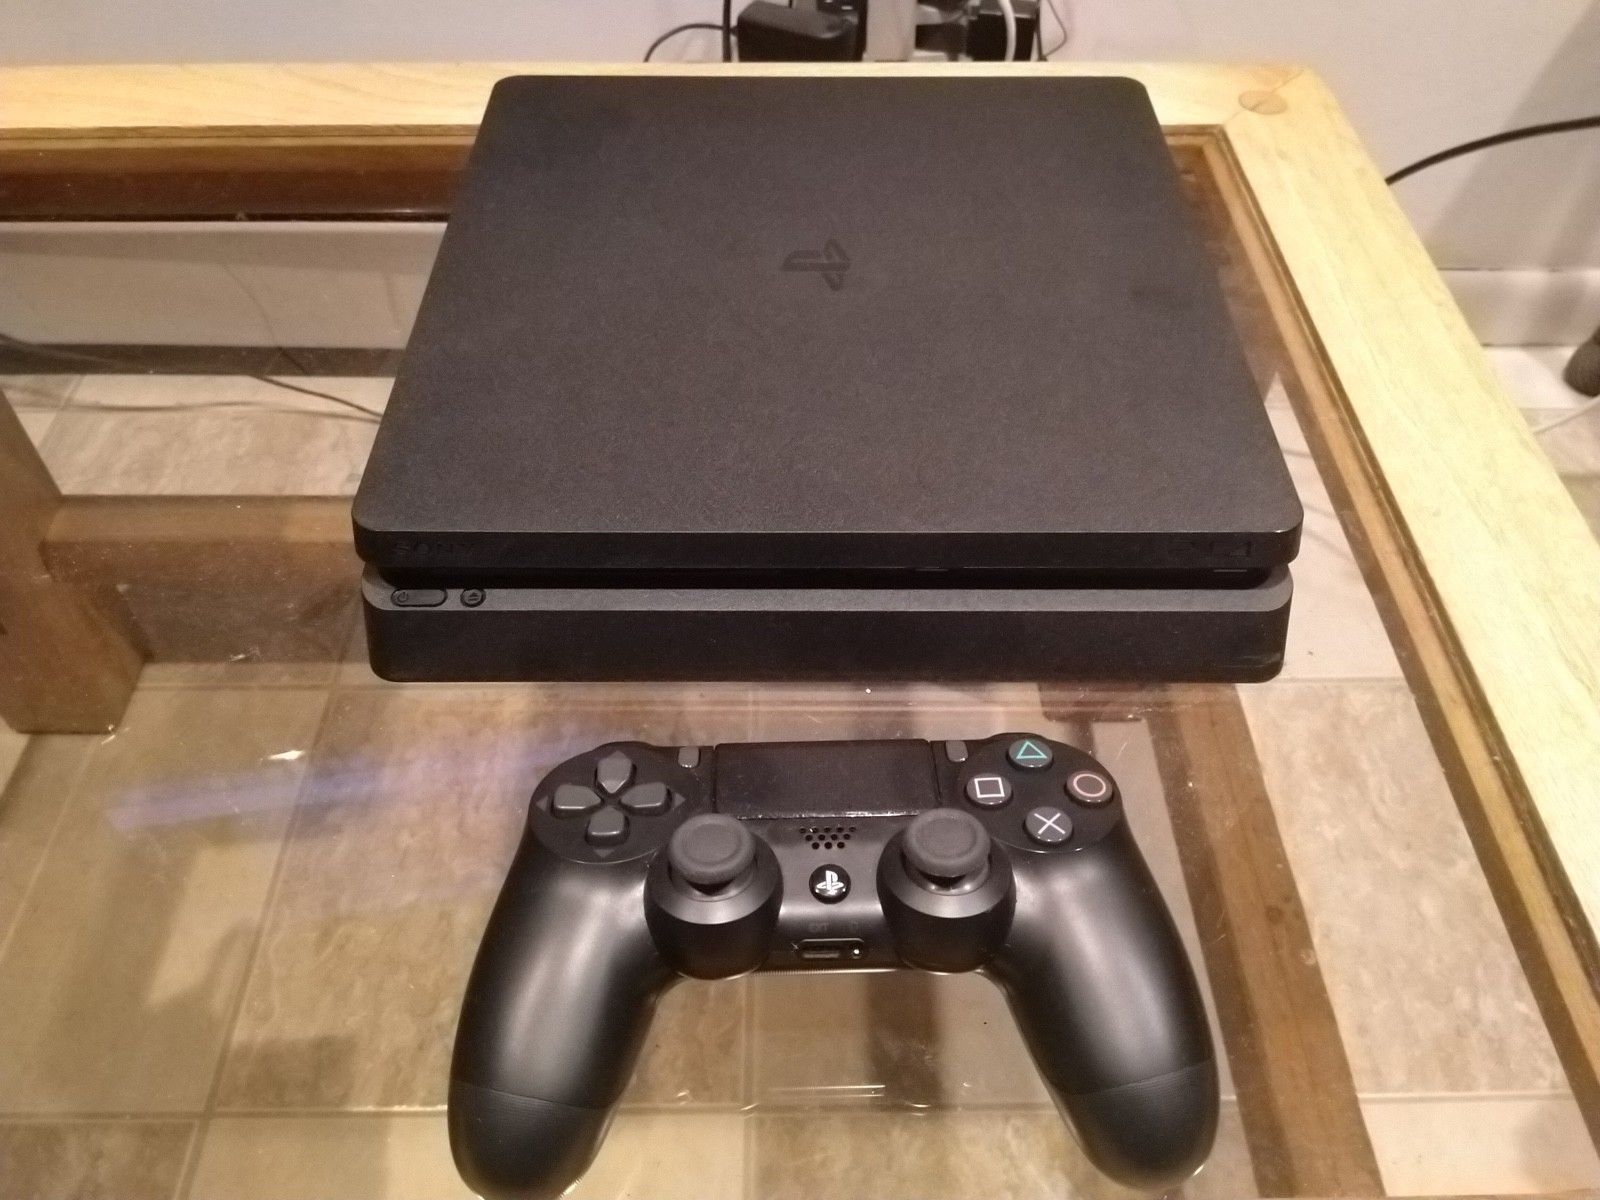 Ps4 For Sale Fairly Used But Still Clean And Works Perfectly With One Controller Inbox Or Whatsapp If Interested 1 9 Ps4 Slim Console Ps4 Slim Playstation 4